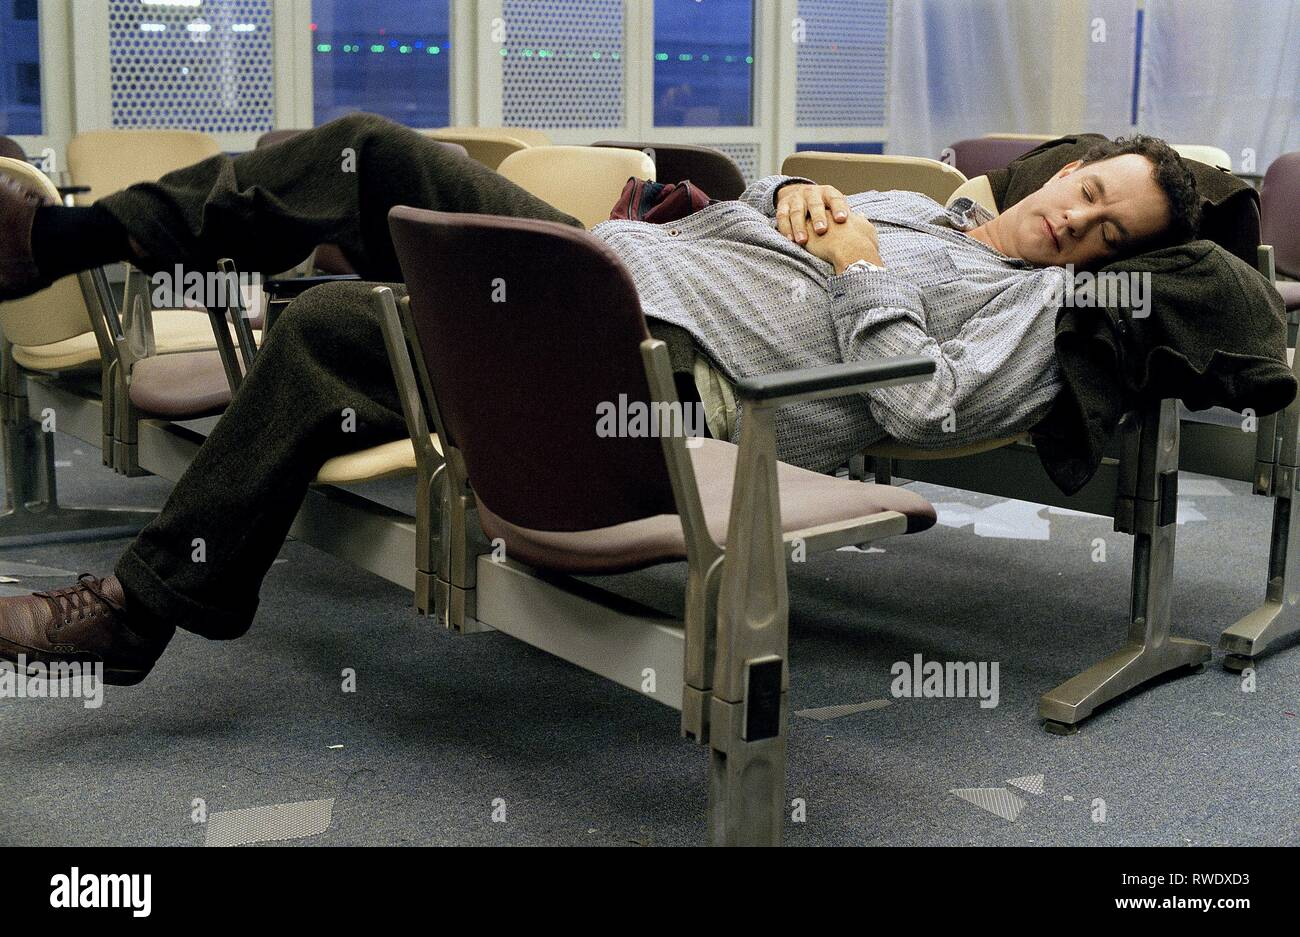 TOM HANKS, THE TERMINAL, 2004 - Stock Image